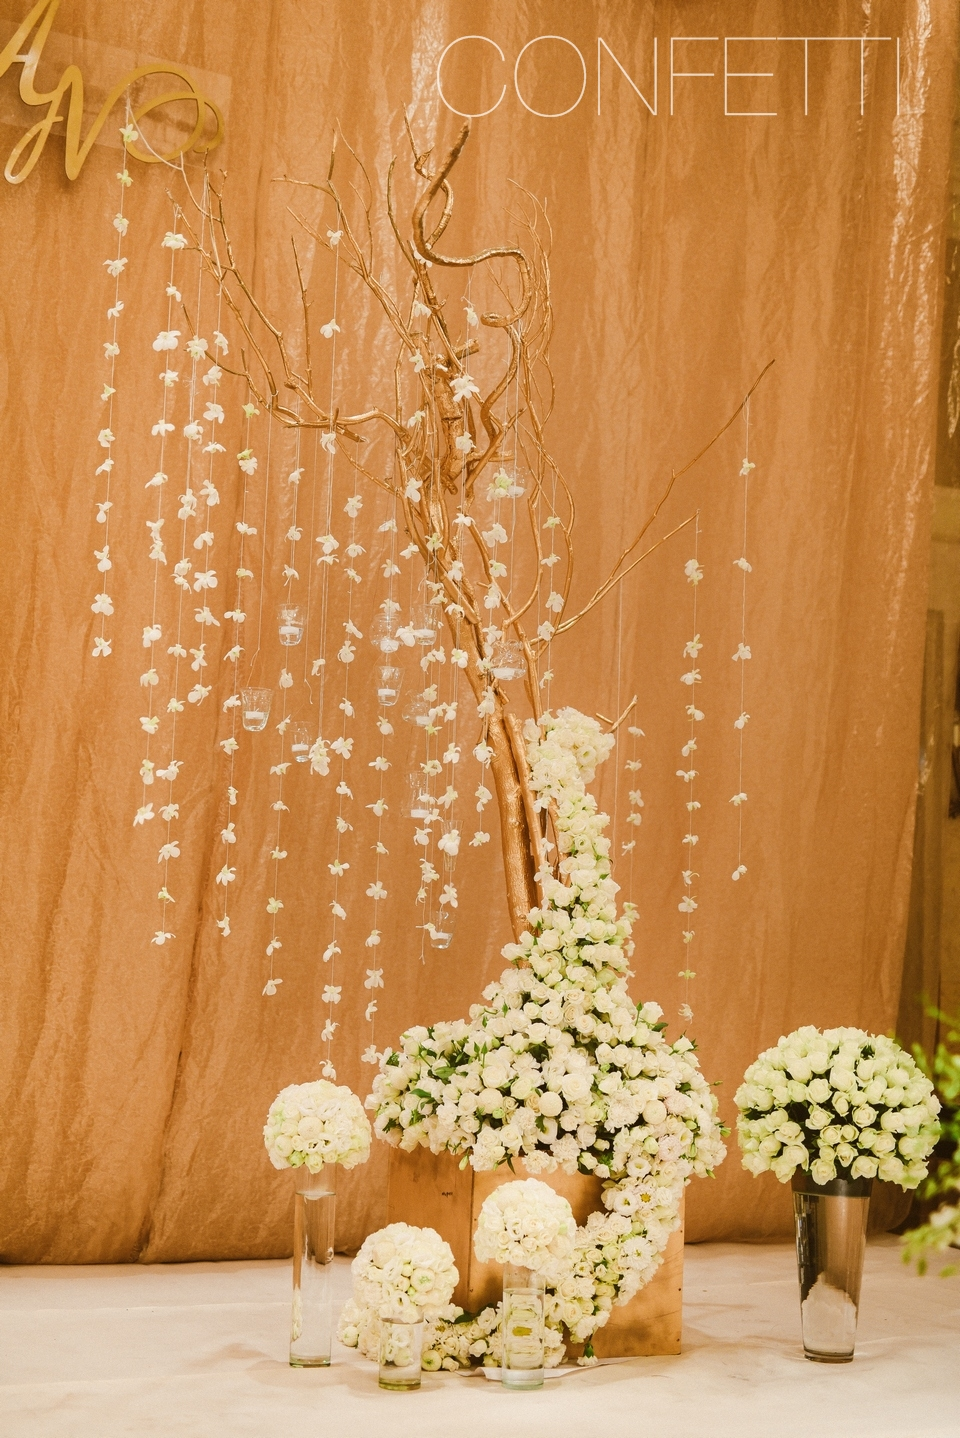 Confetti-real-wedding-Flawless combination (11)